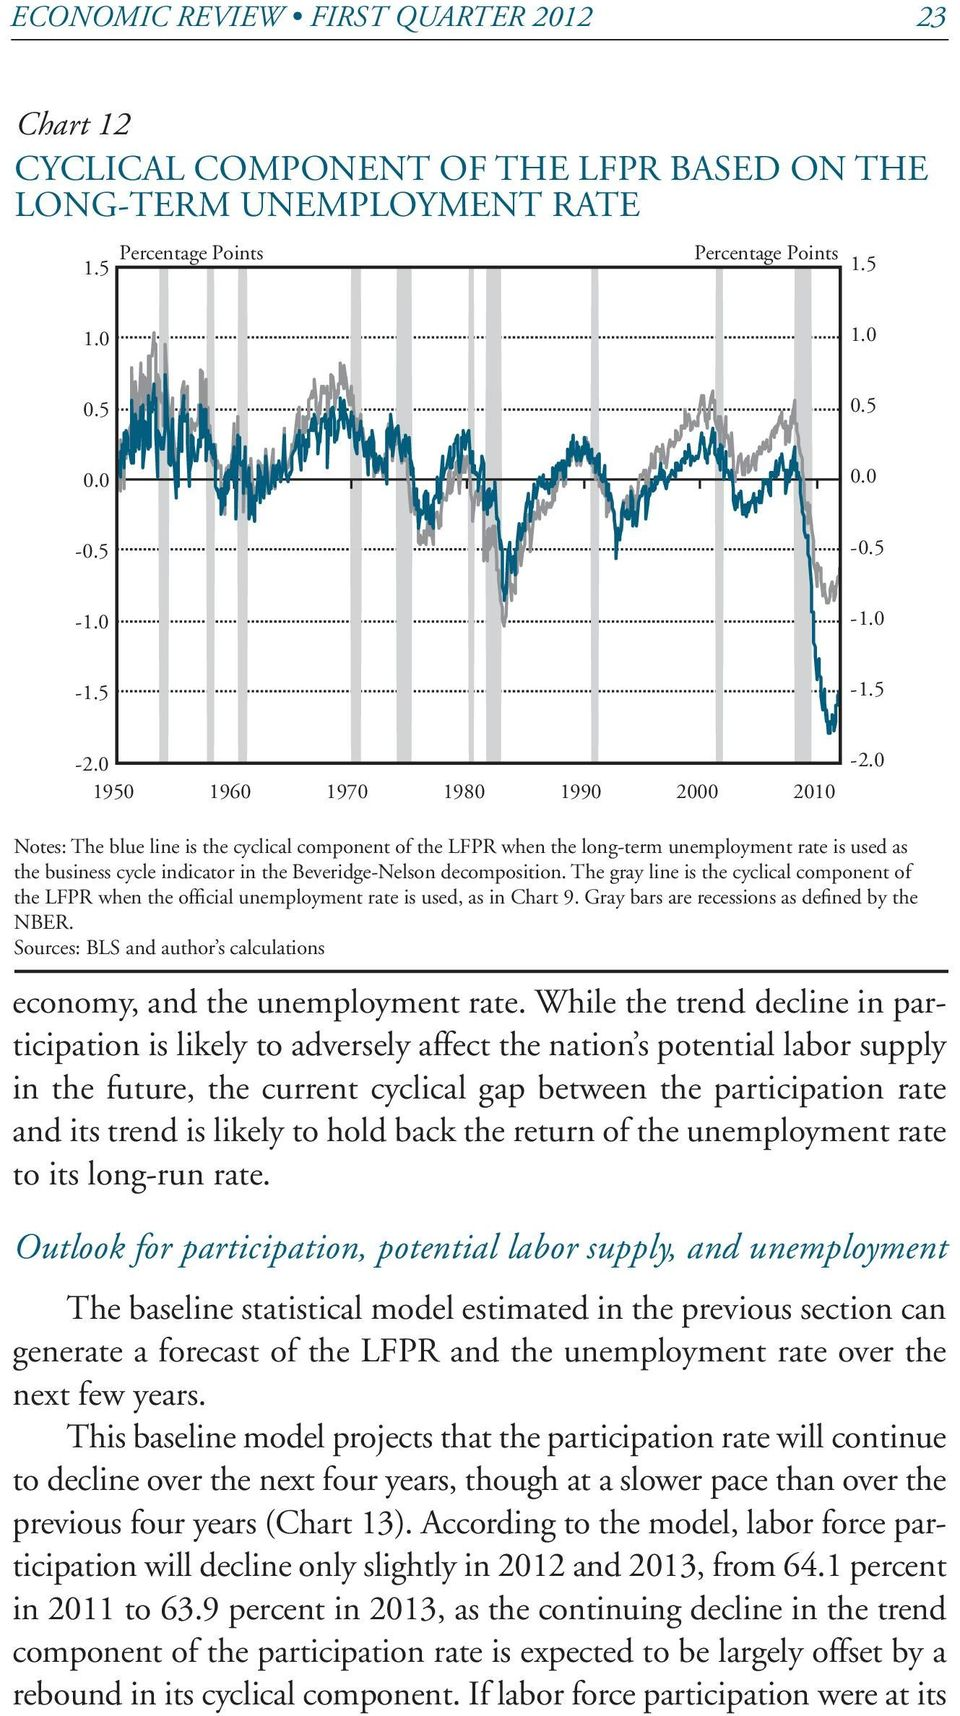 0 Notes: The blue line is the cyclical component of the LFPR when the long-term unemployment rate is used as the business cycle indicator in the Beveridge-Nelson decomposition.